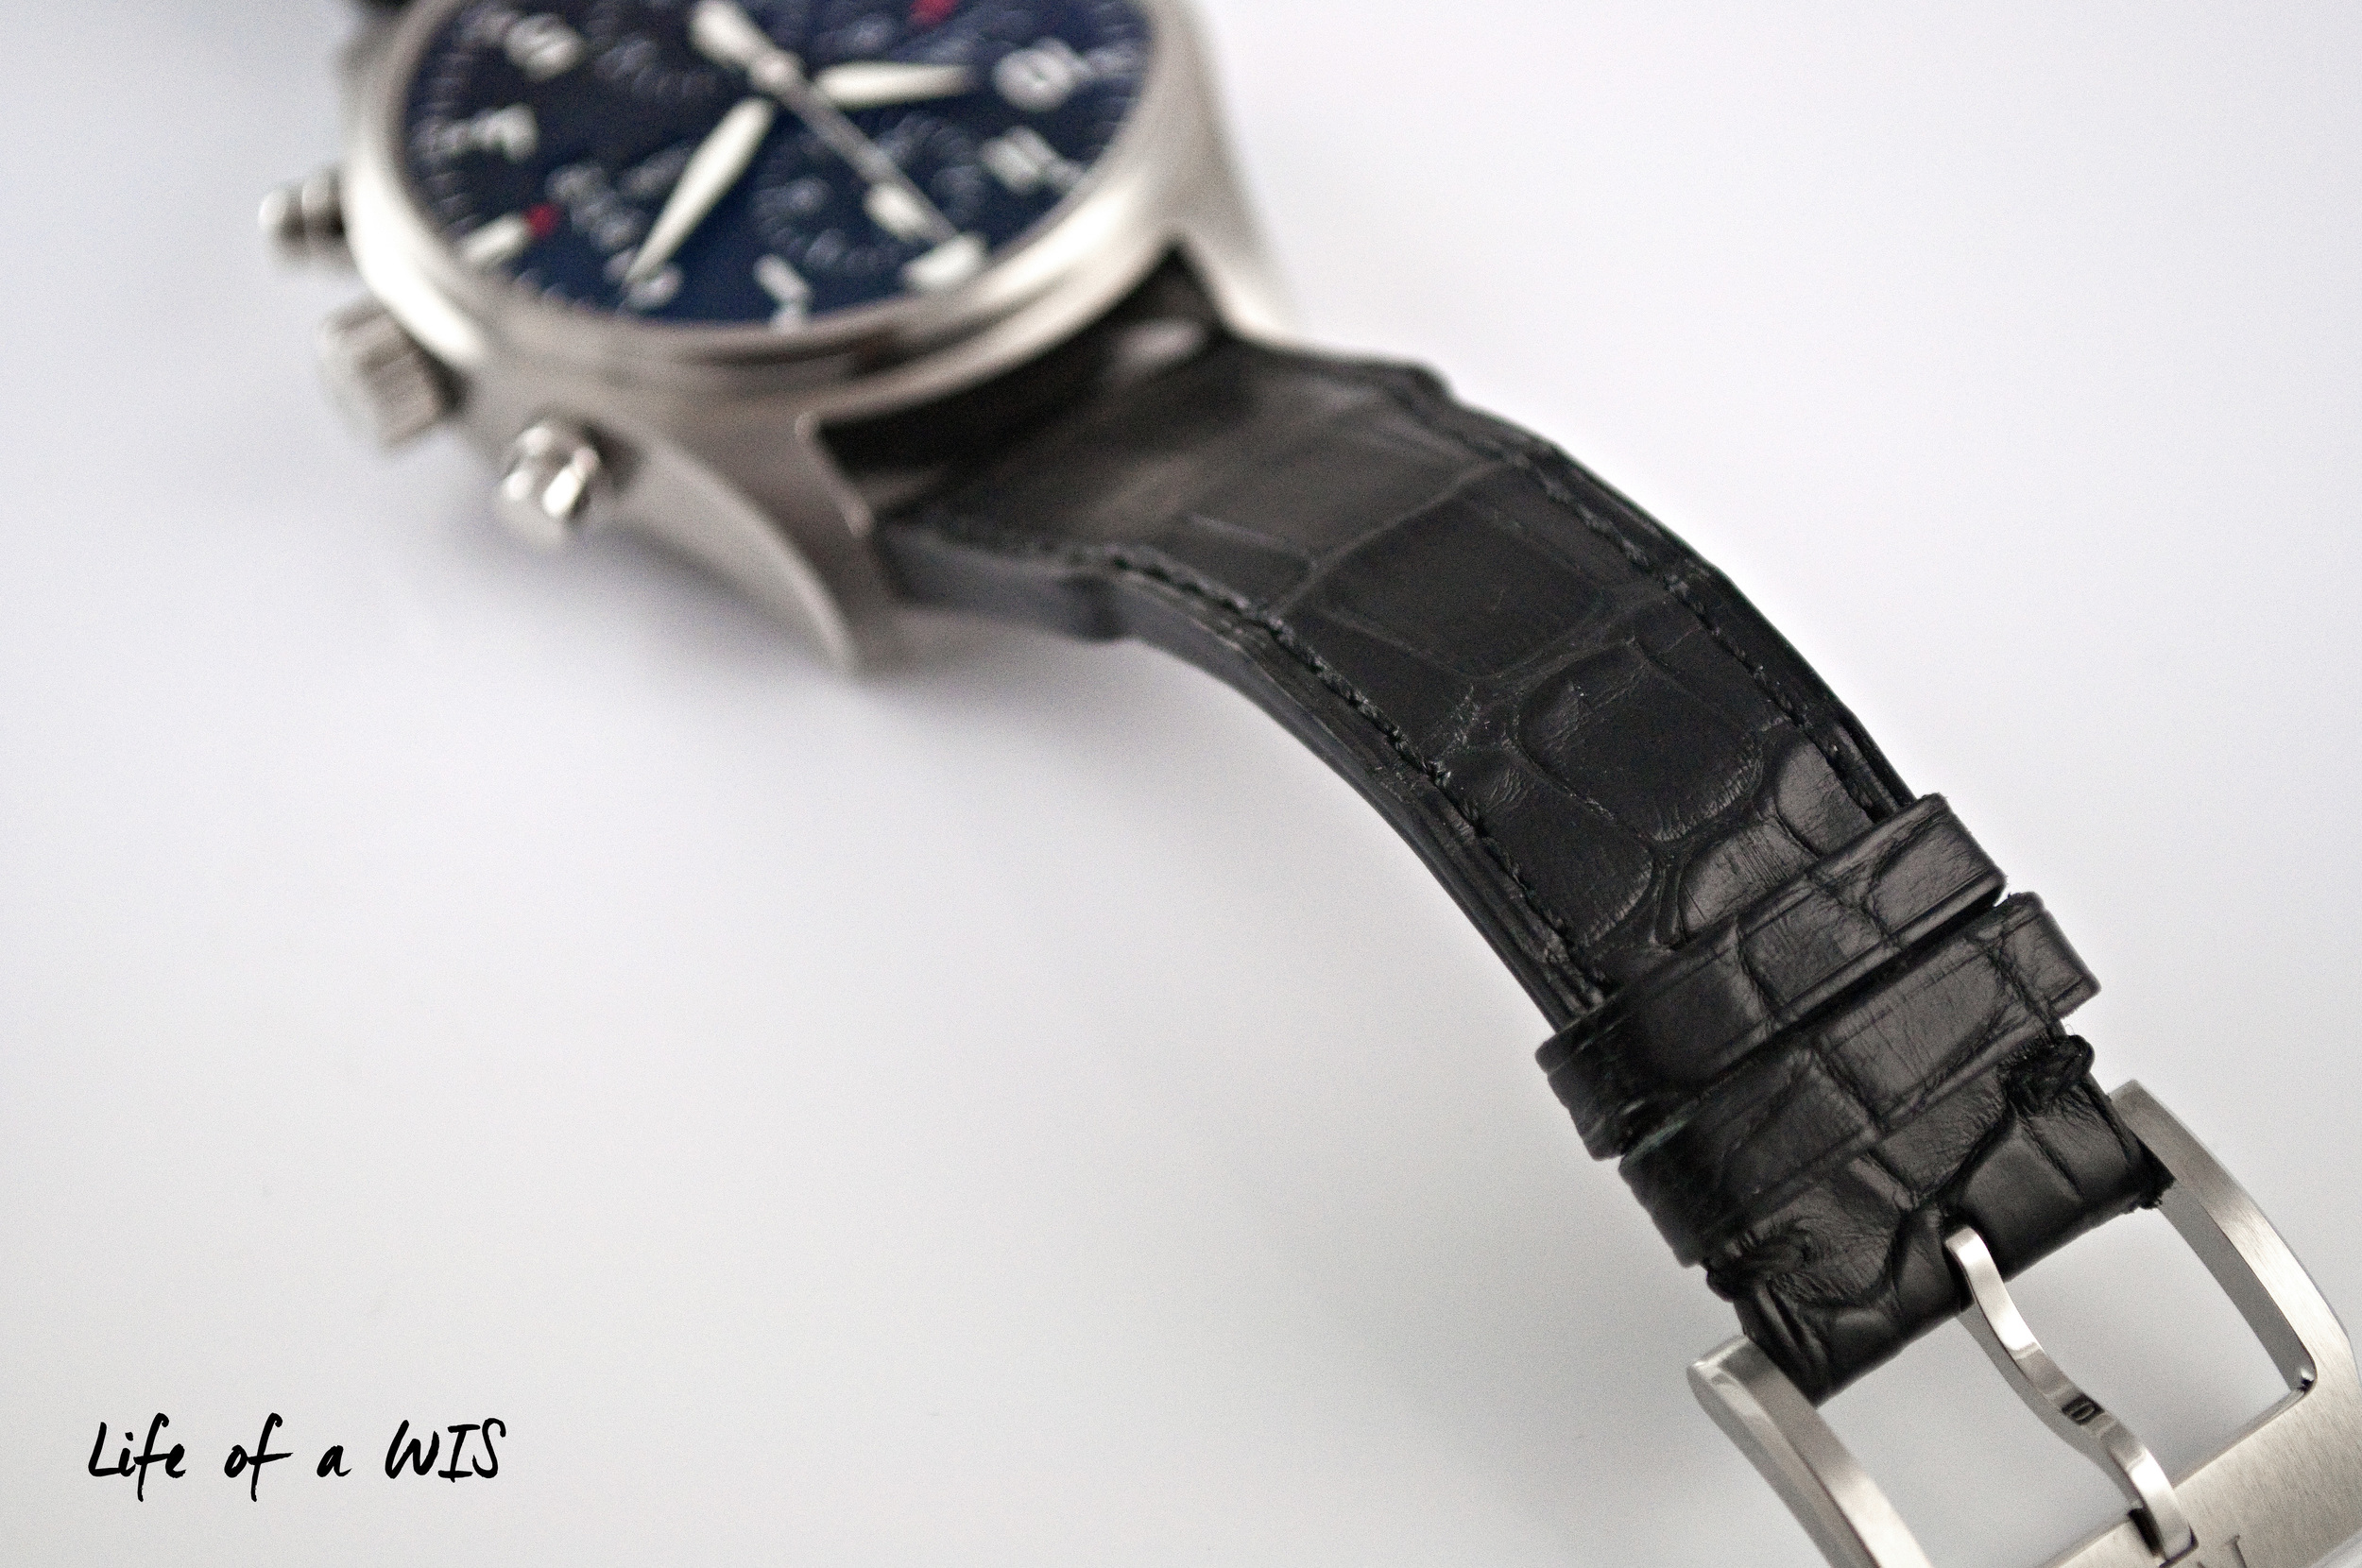 The black alligator strap goes well with the Pilot watch, buta riveted version would have been even hotter.